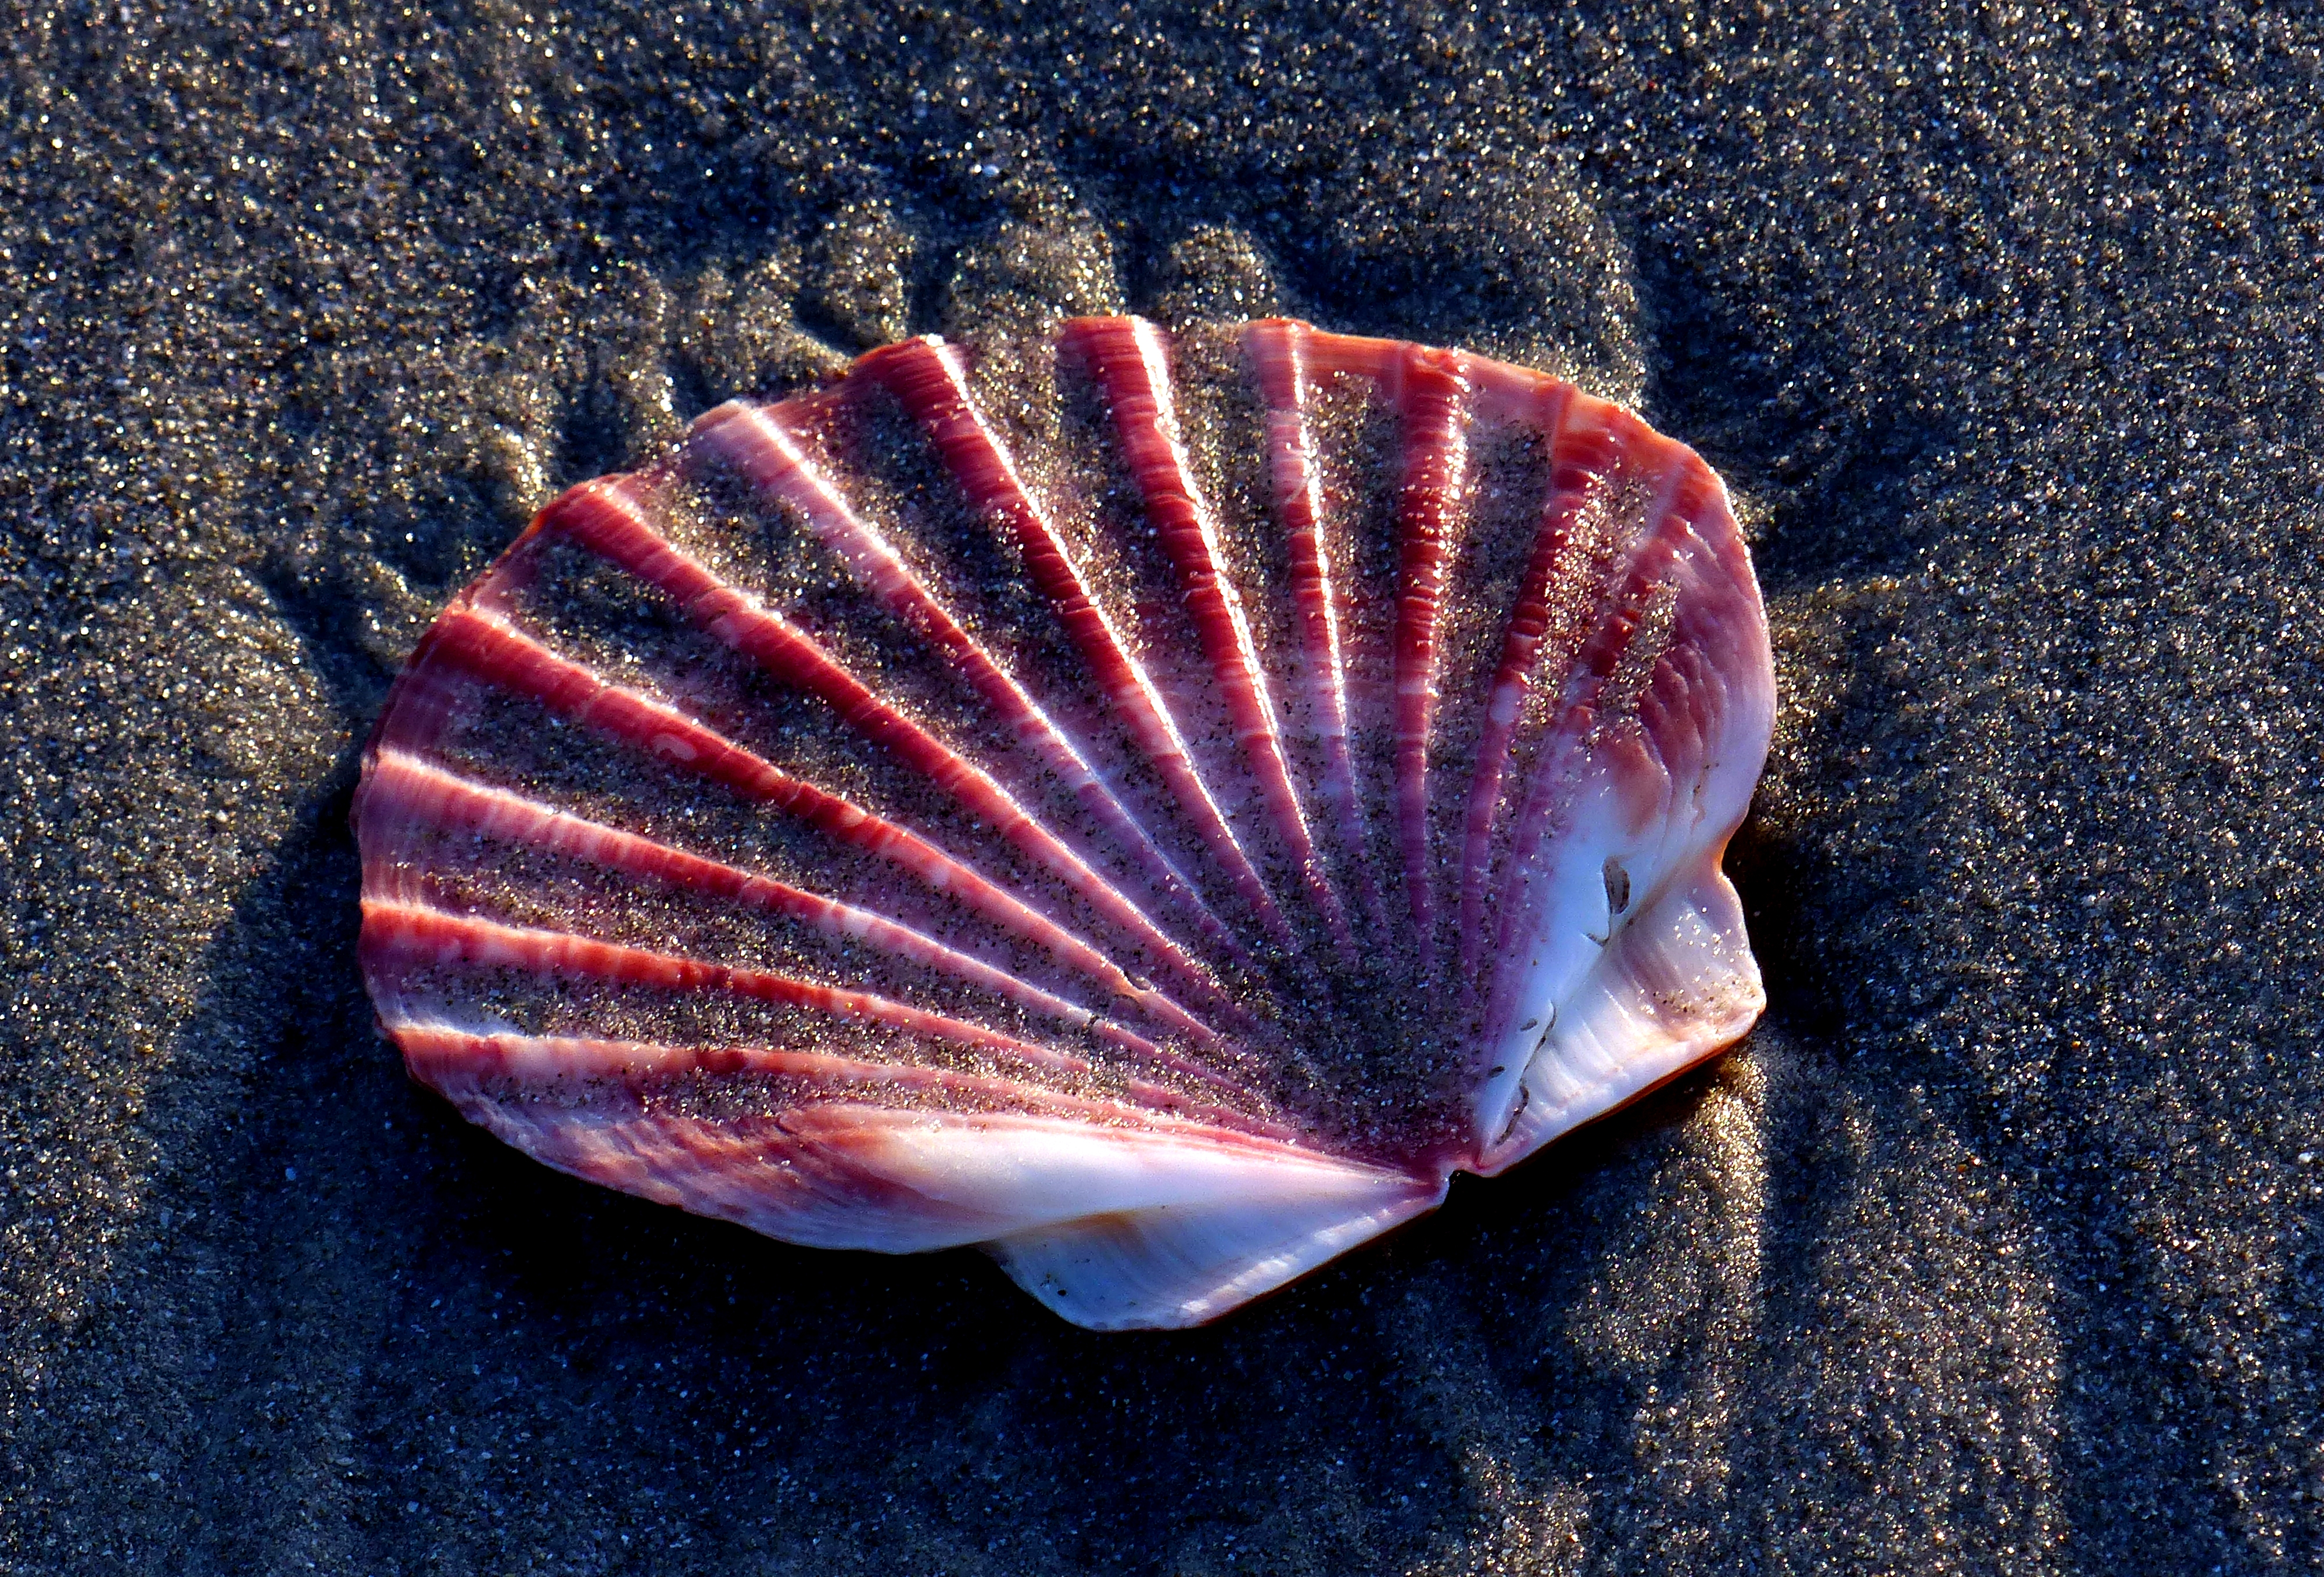 Scallop shell on the sands. photo